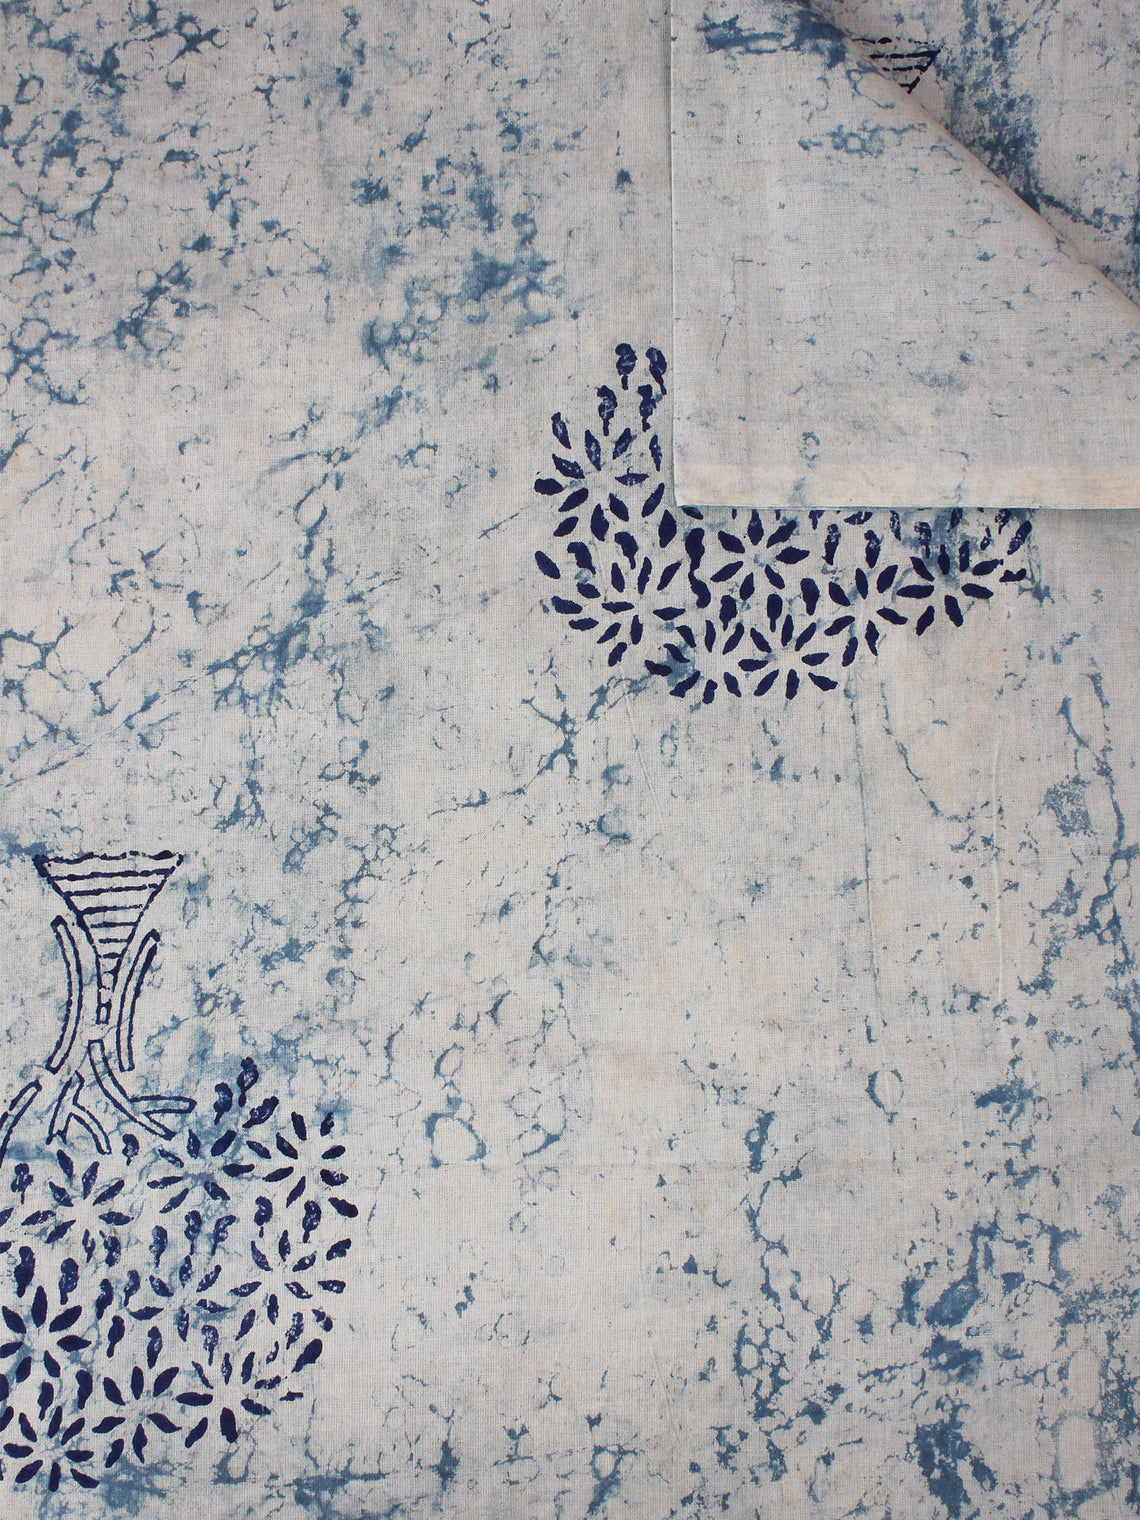 Ivory Indigo Natural Dyed Hand Block Printed Cotton Fabric Per Meter - F0916309